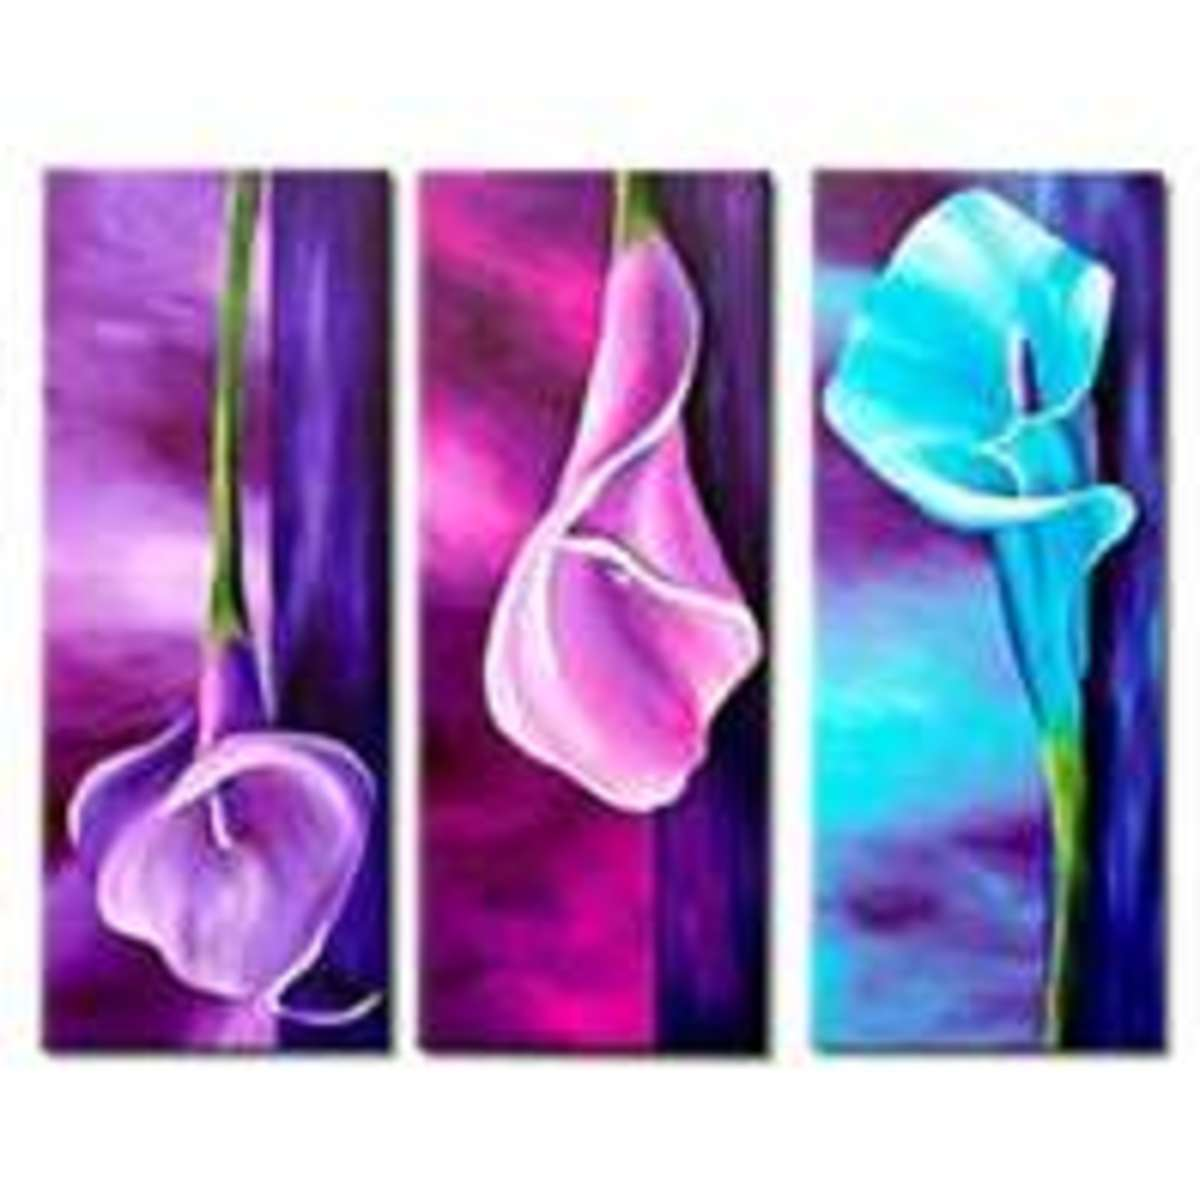 Image credit:  http://paintingdeco.com/decorative-flower-wall-art-canvas-painting-p3241